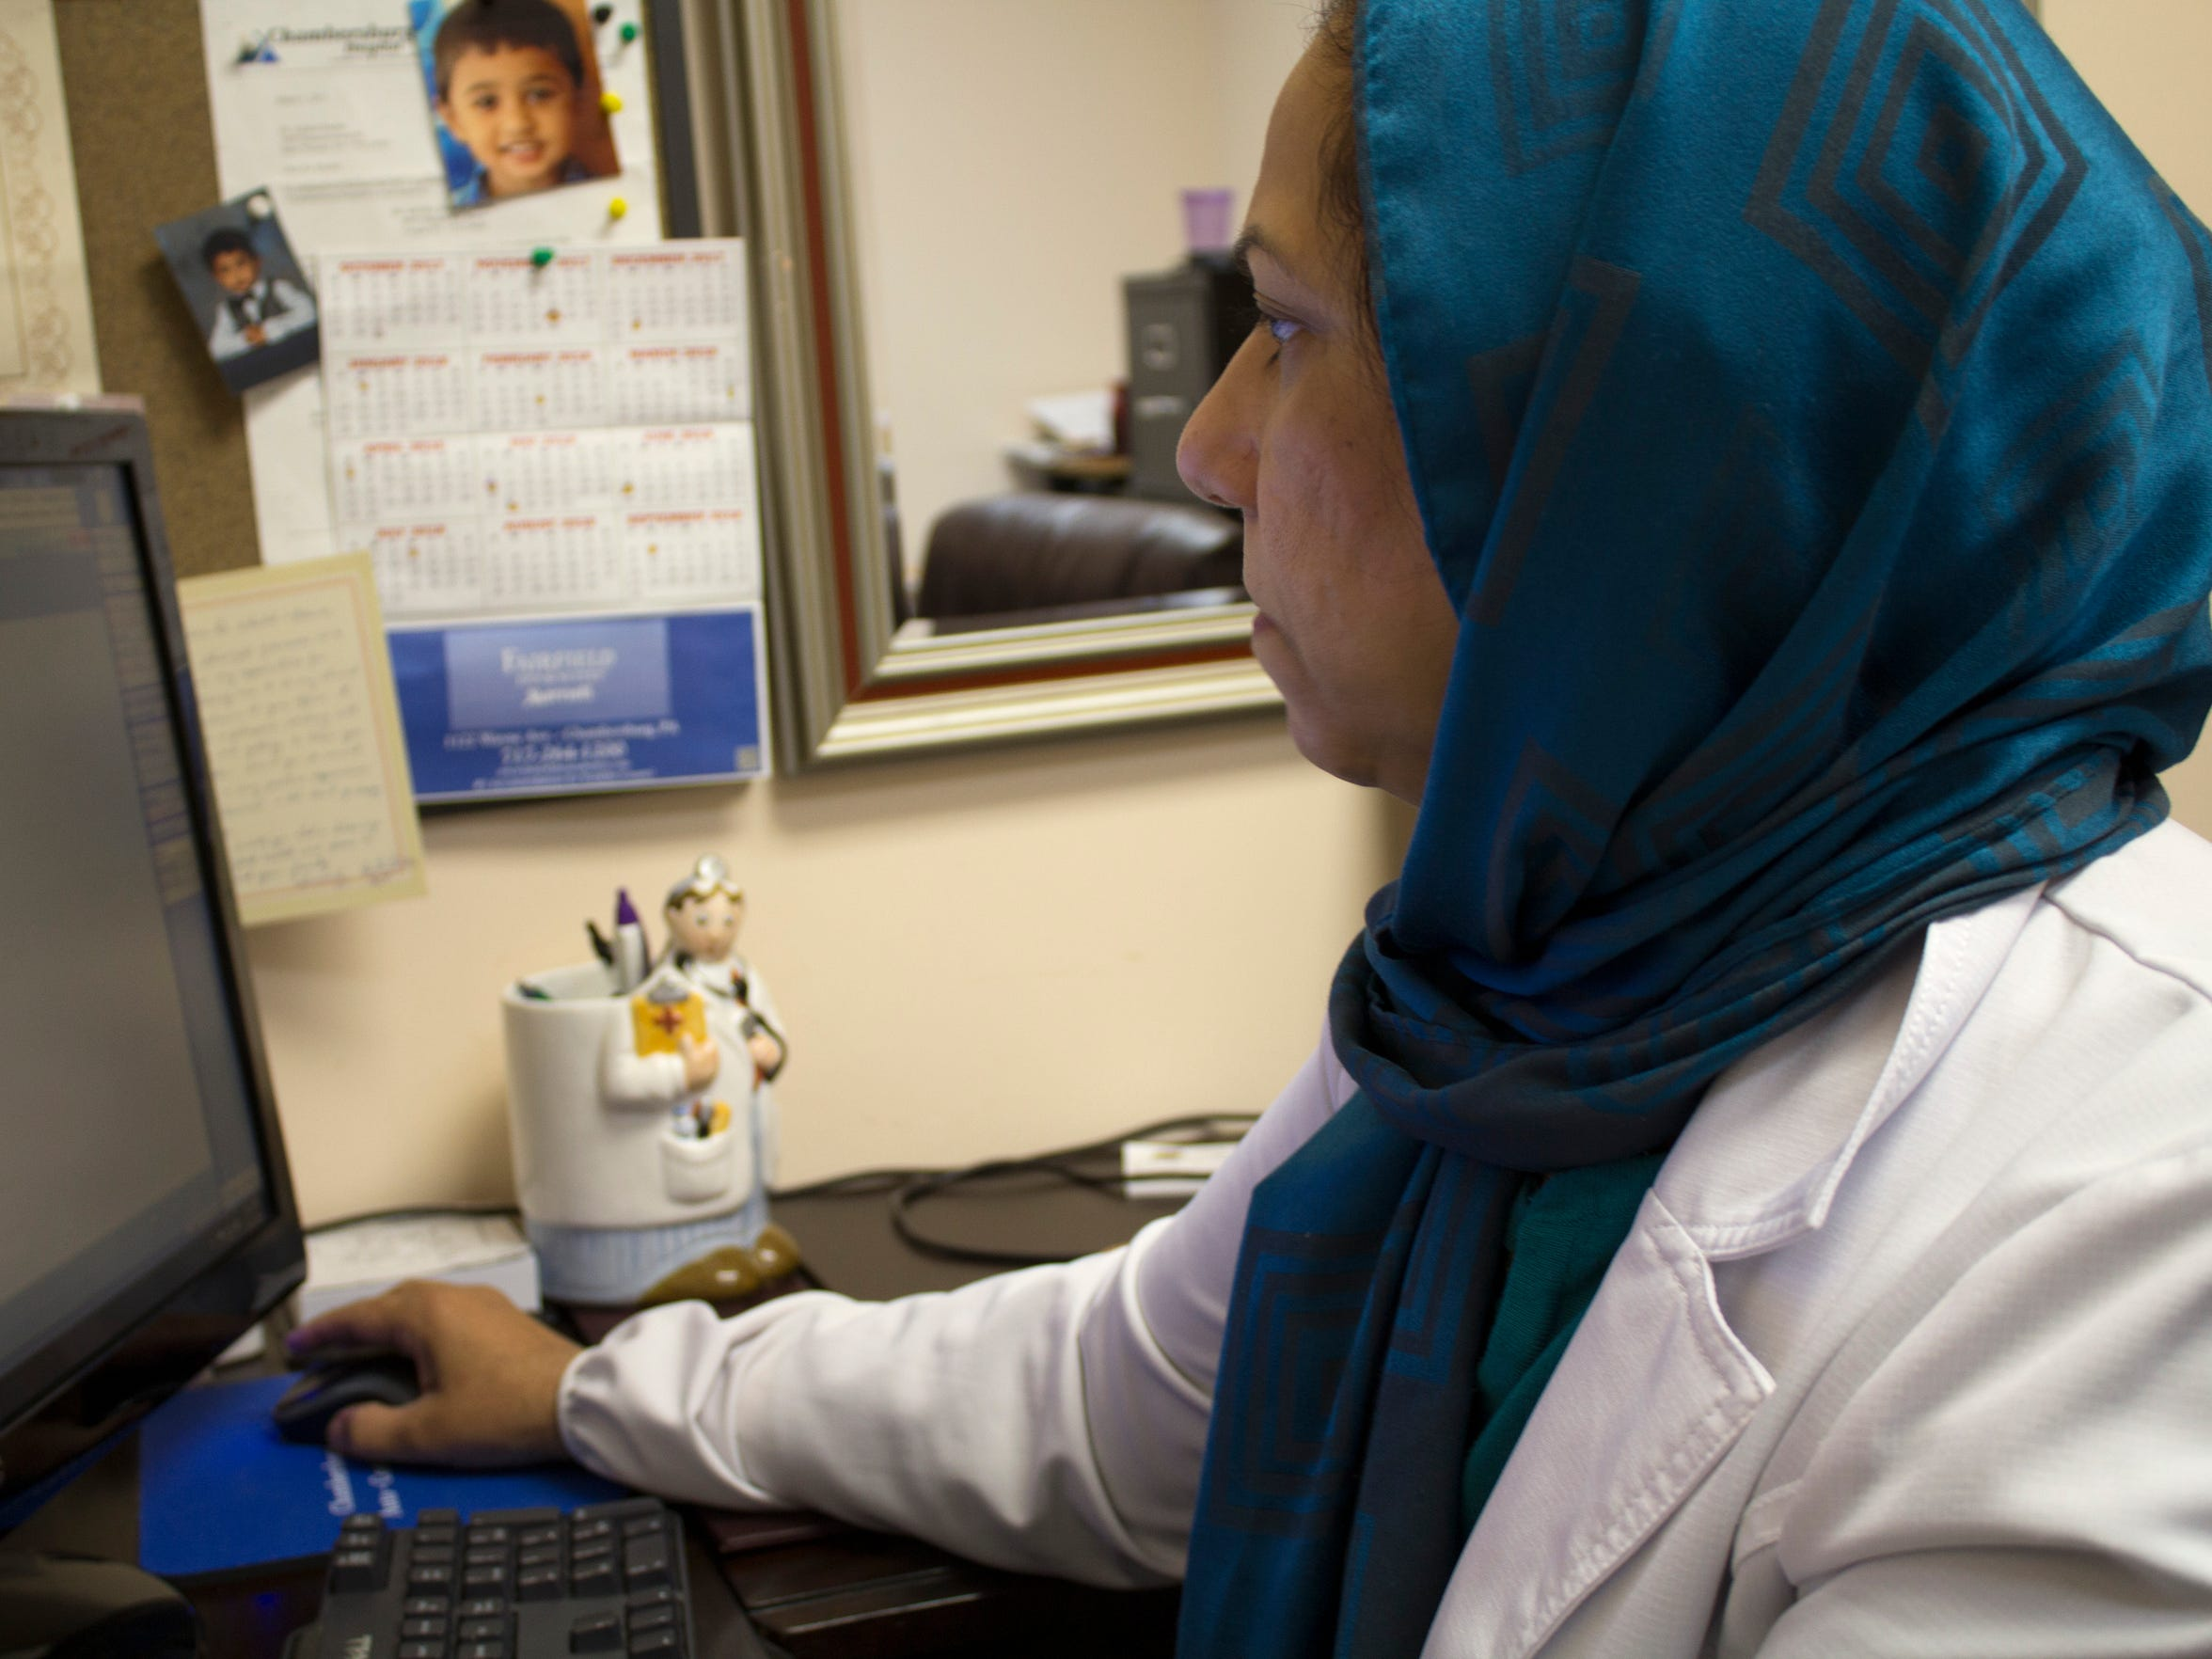 Amatul Khalid works at her desk the morning of Nov. 1 at the Chambersburg Medical Associates on Scotland Avenue. Khalid works as a doctor of internal medical, while her husband, Akram, manages the office. The two opened the practice in 2005 after they moved to the area.